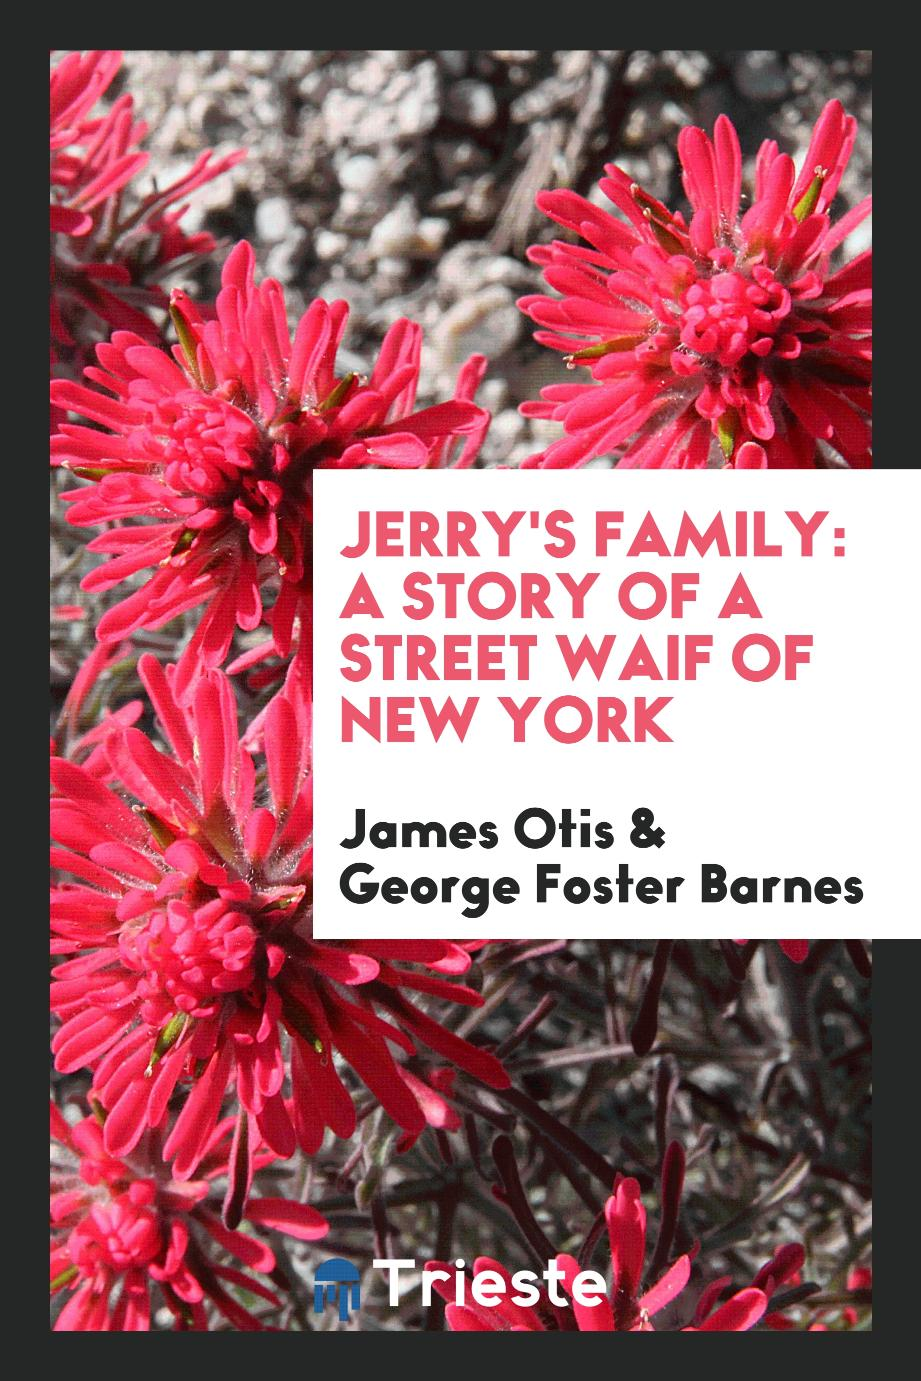 Jerry's Family: A Story of a Street Waif of New York